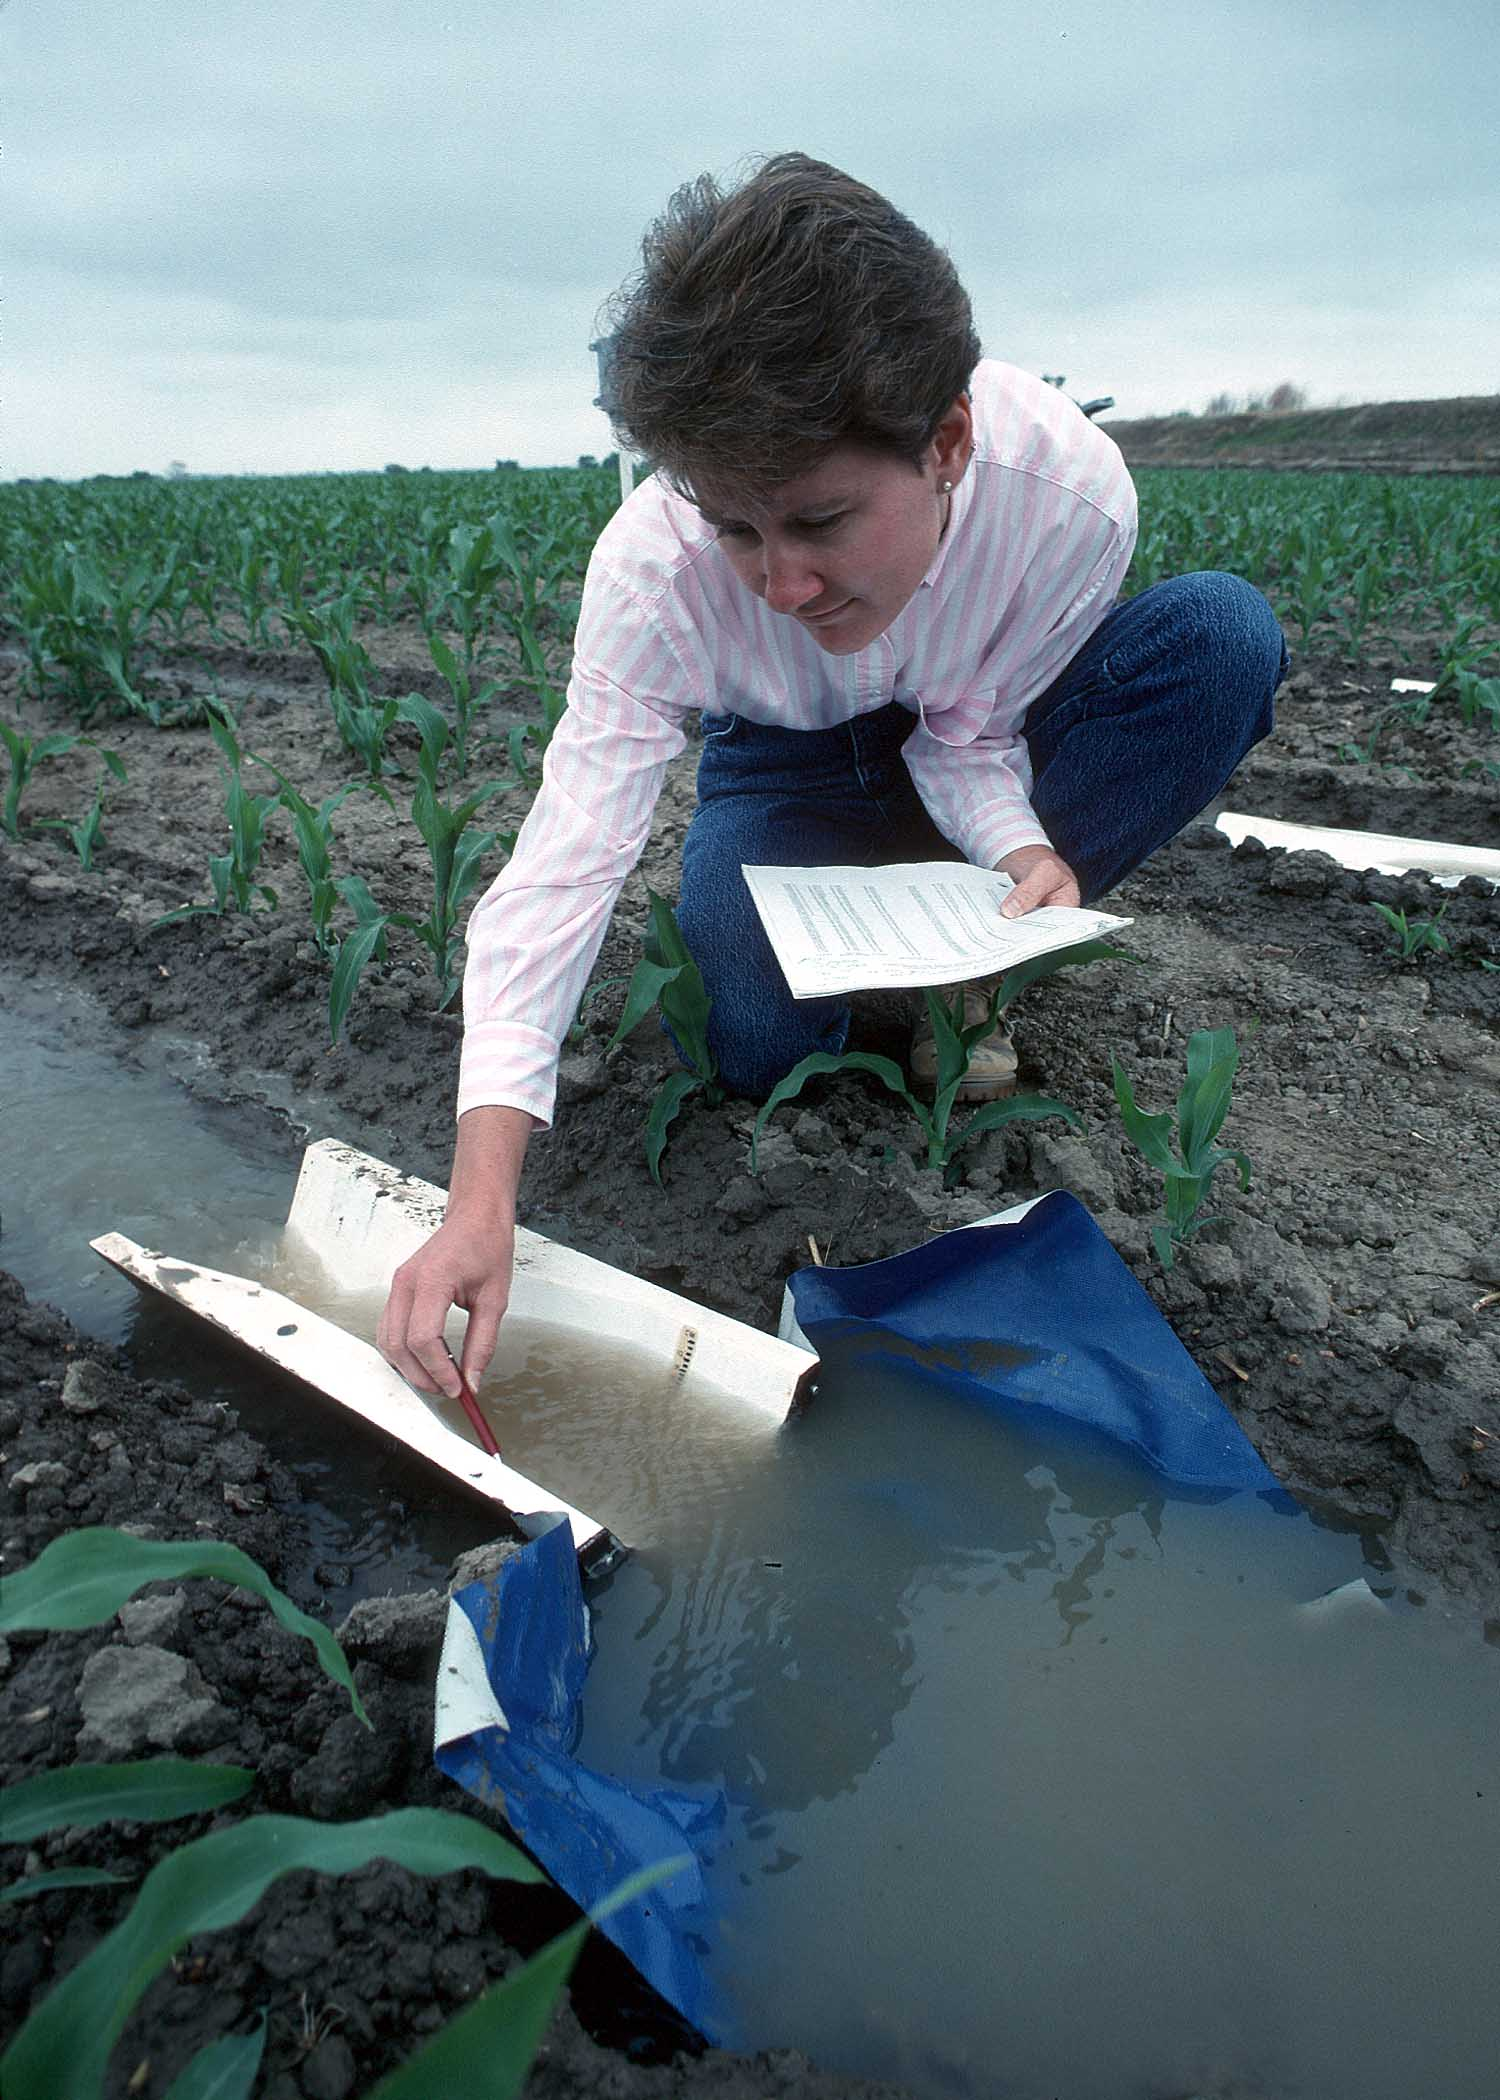 Lady sampling water flow through an aluminum weir in irrigated crop field.